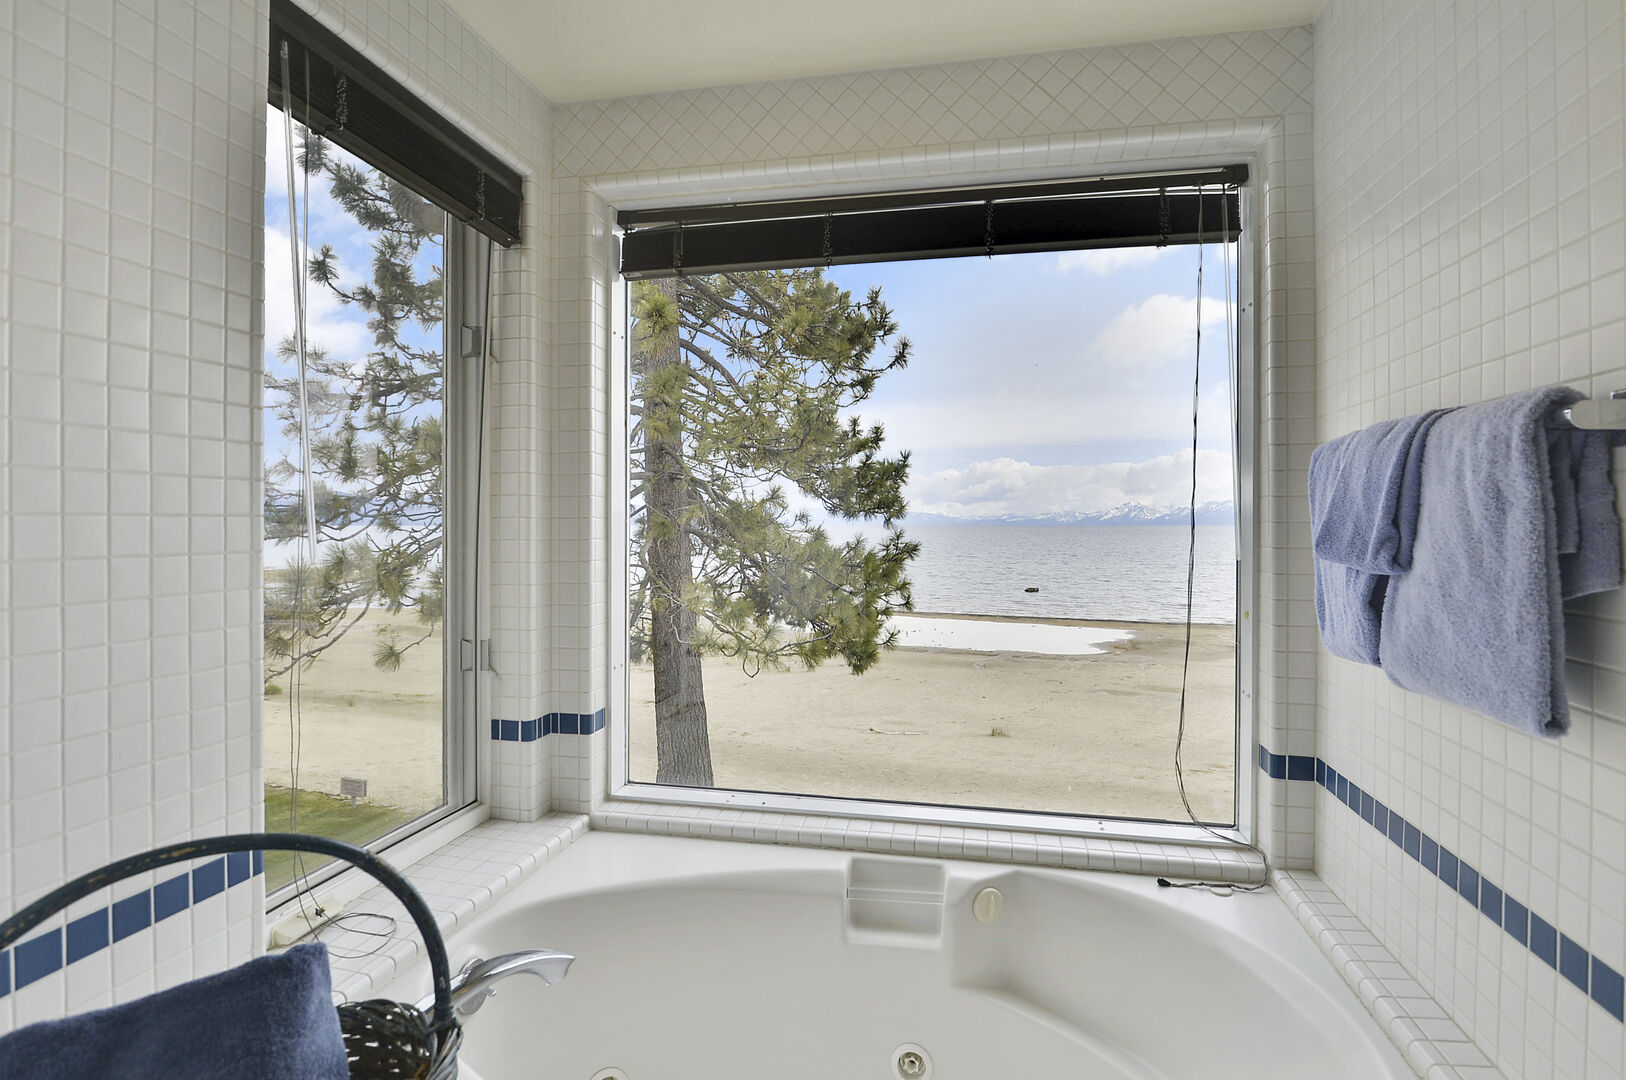 Bathtub and Windows with a View of the Lake, and Pine Tree.